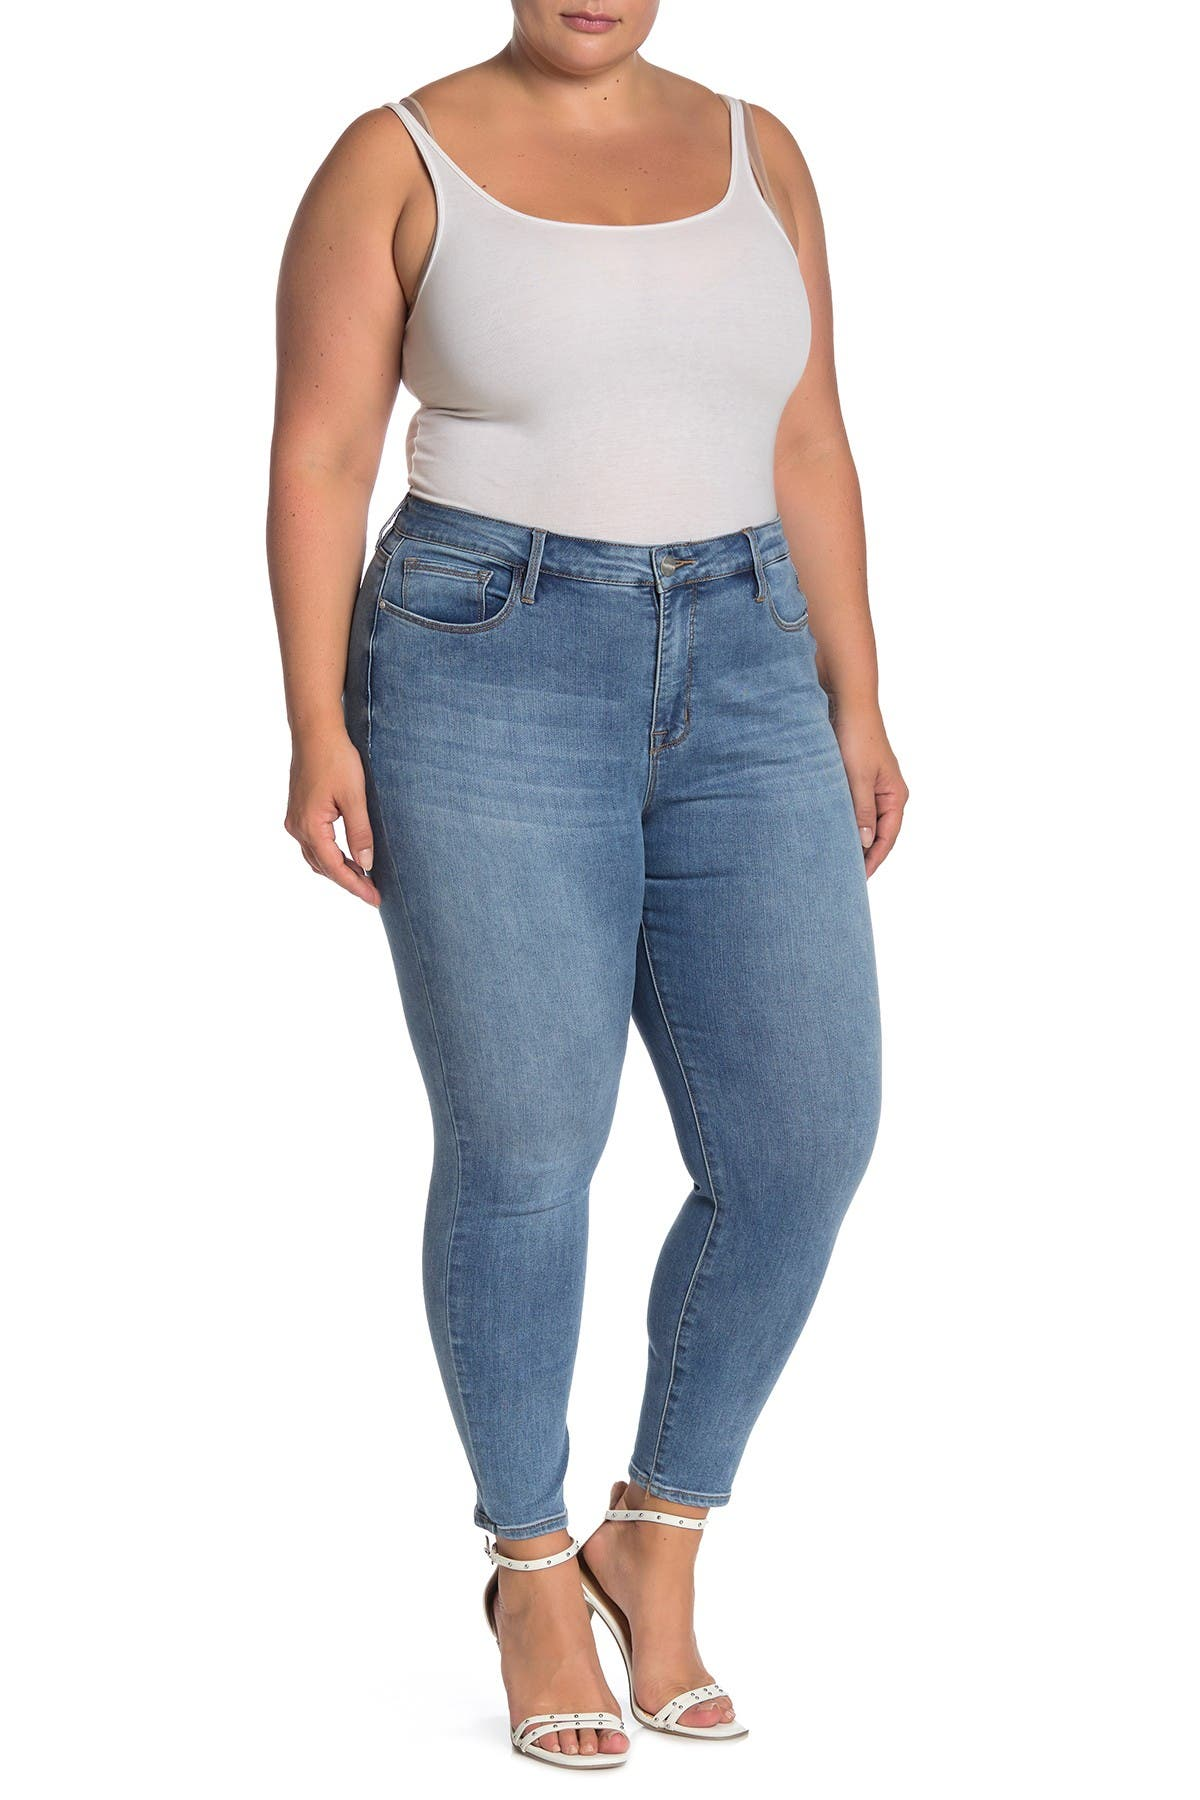 Image of Sanctuary Fit Tech Social Skinny Jeans